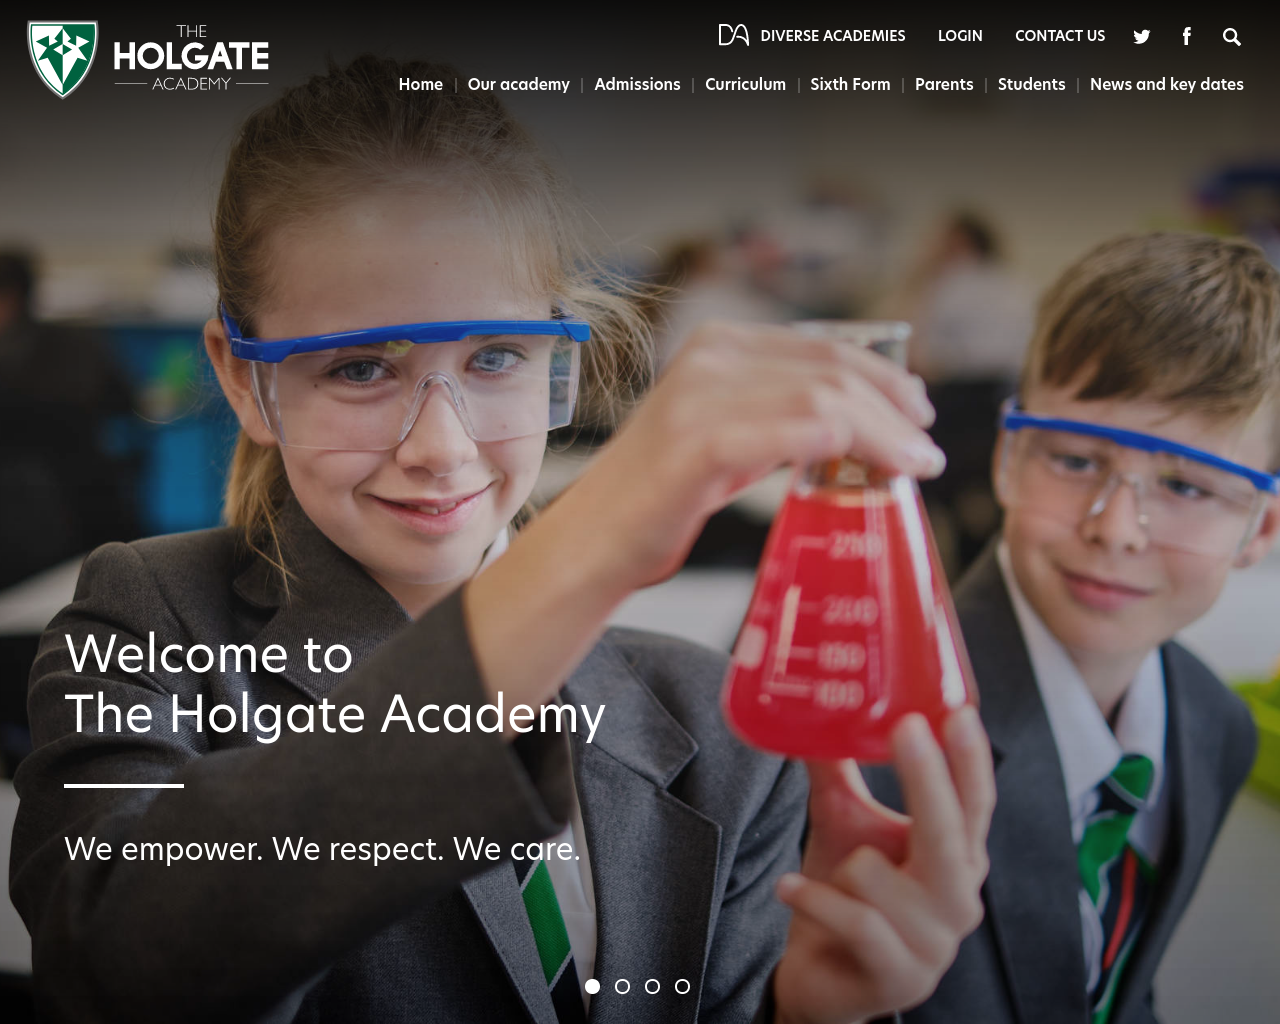 Holgate Academy website